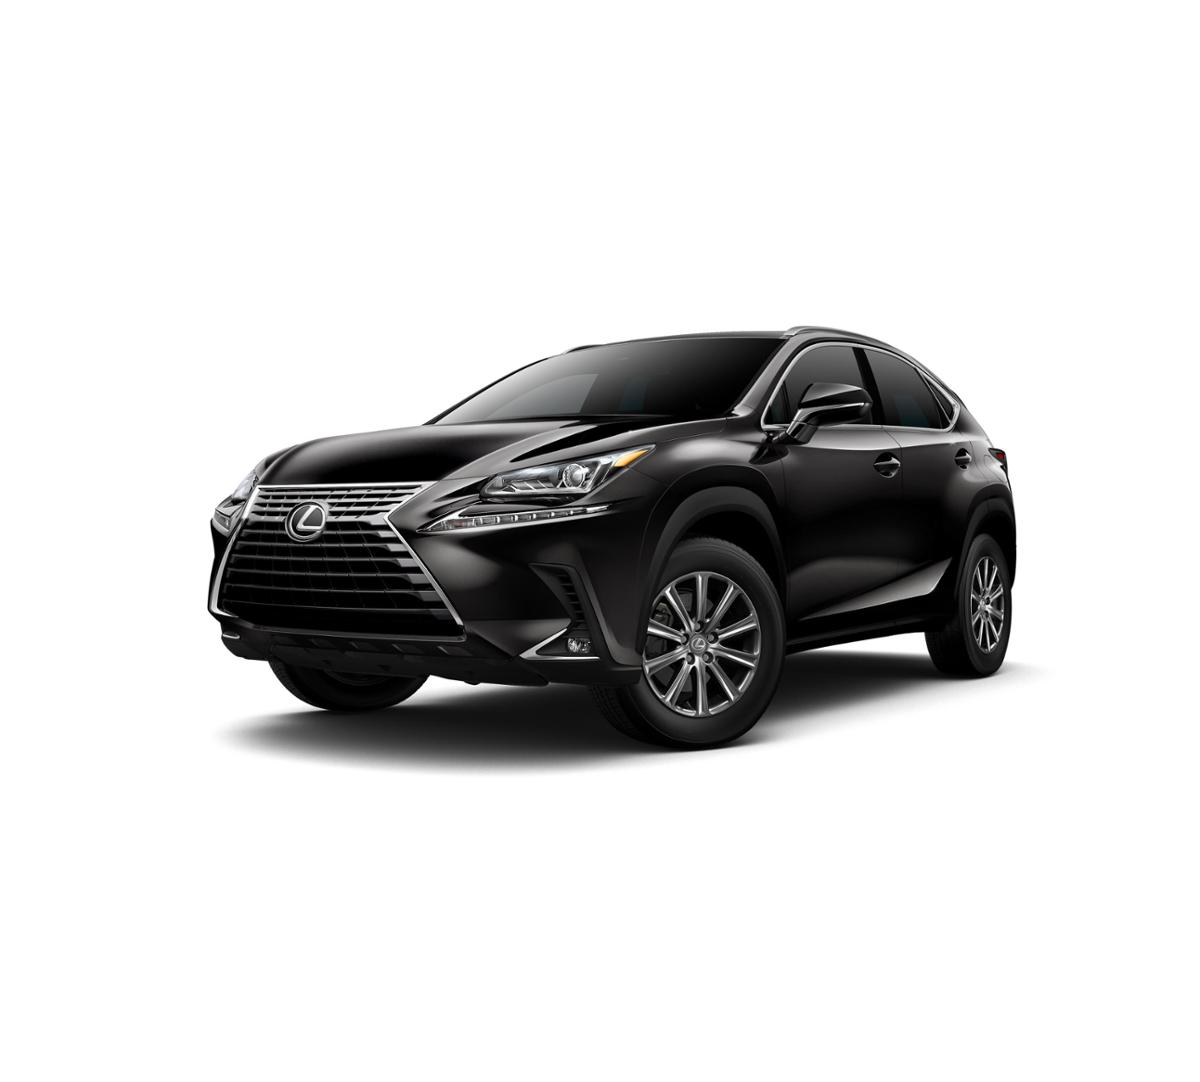 2019 Lexus NX Vehicle Photo in Santa Barbara, CA 93105